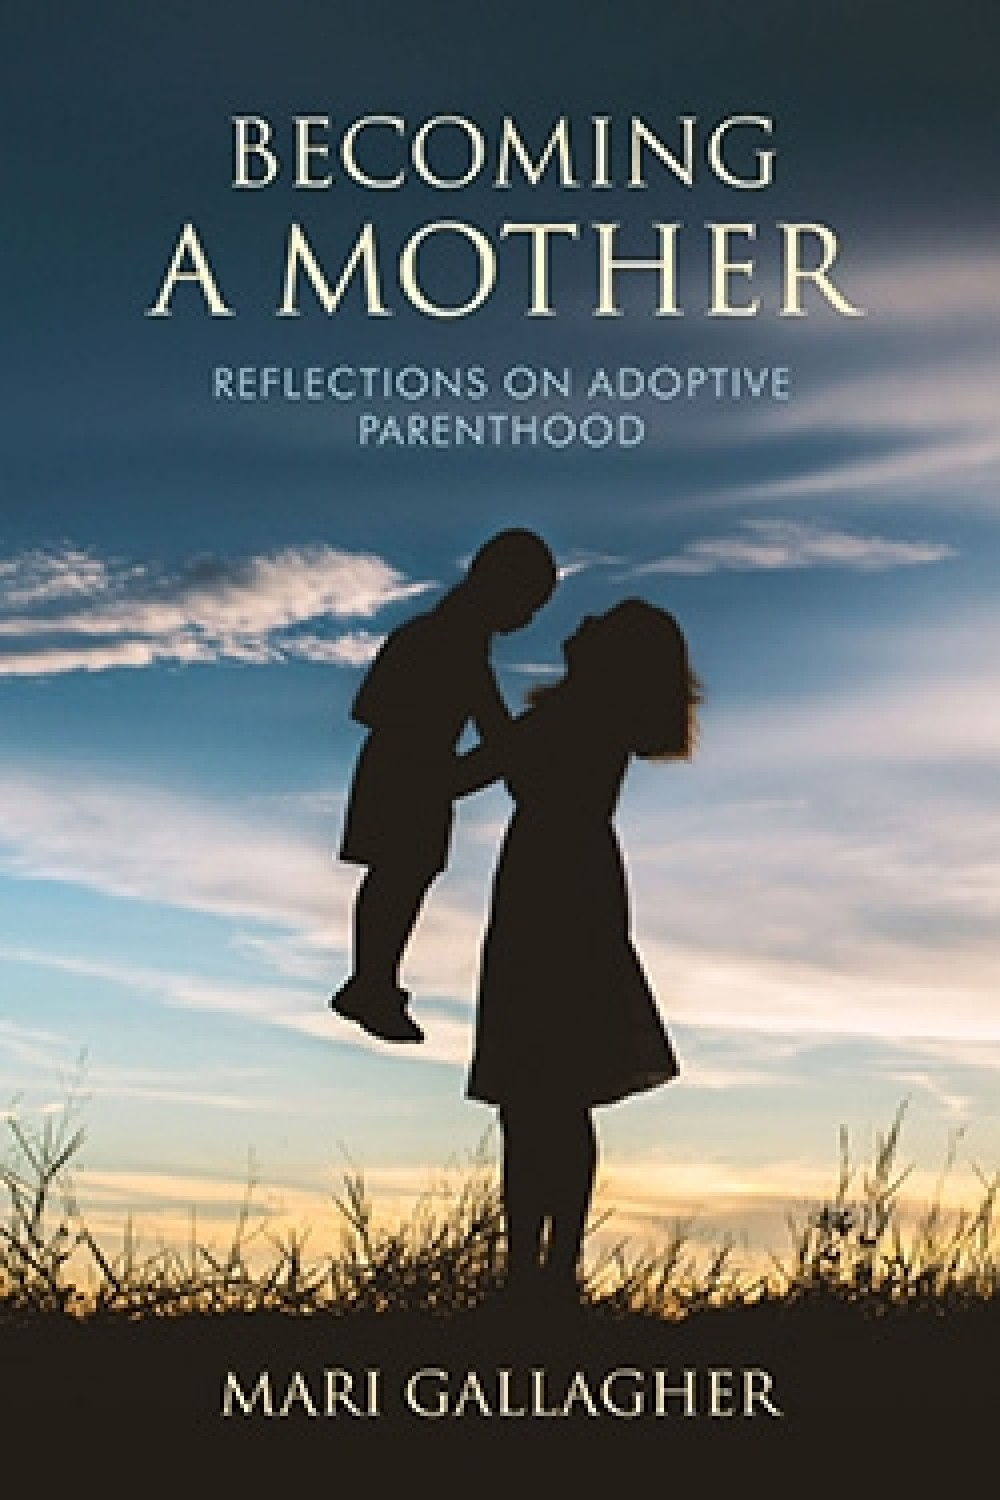 Becoming a Mother: Reflections on Adoptive Parenthood by Mari Gallagher